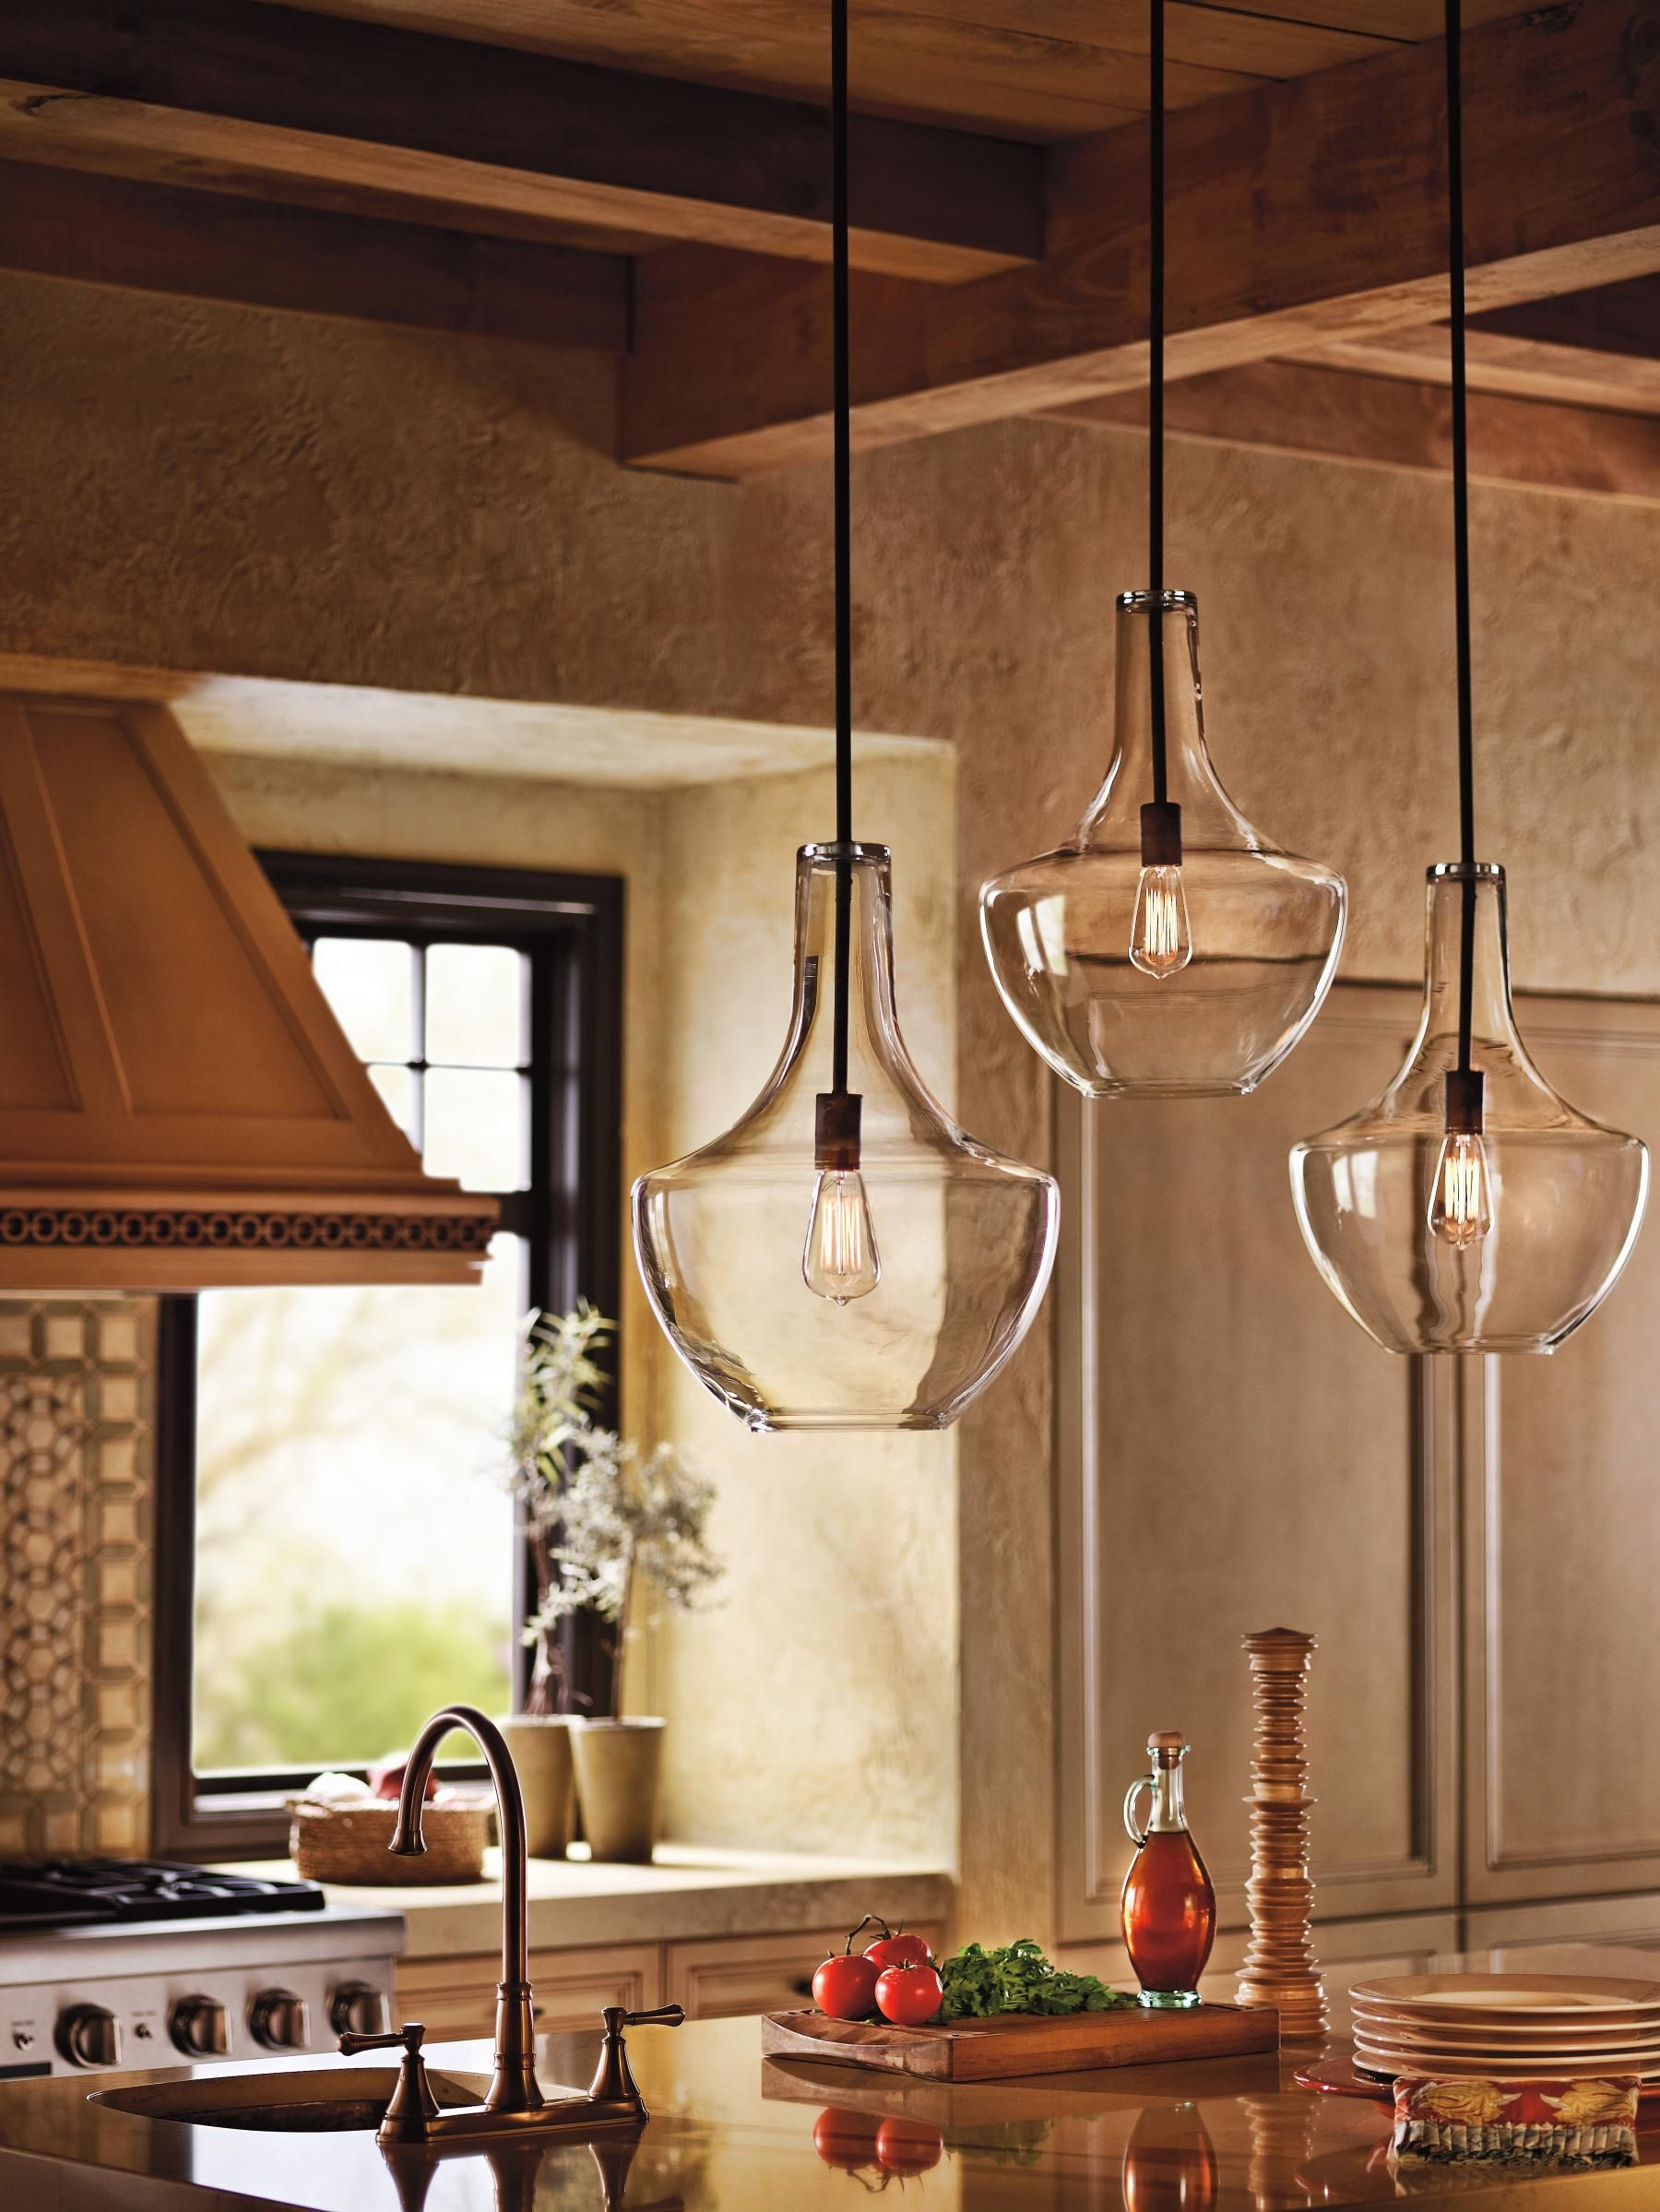 kitchen chandelier lighting This transitional style pendant is a perfect option to light up and decorate your kitchen